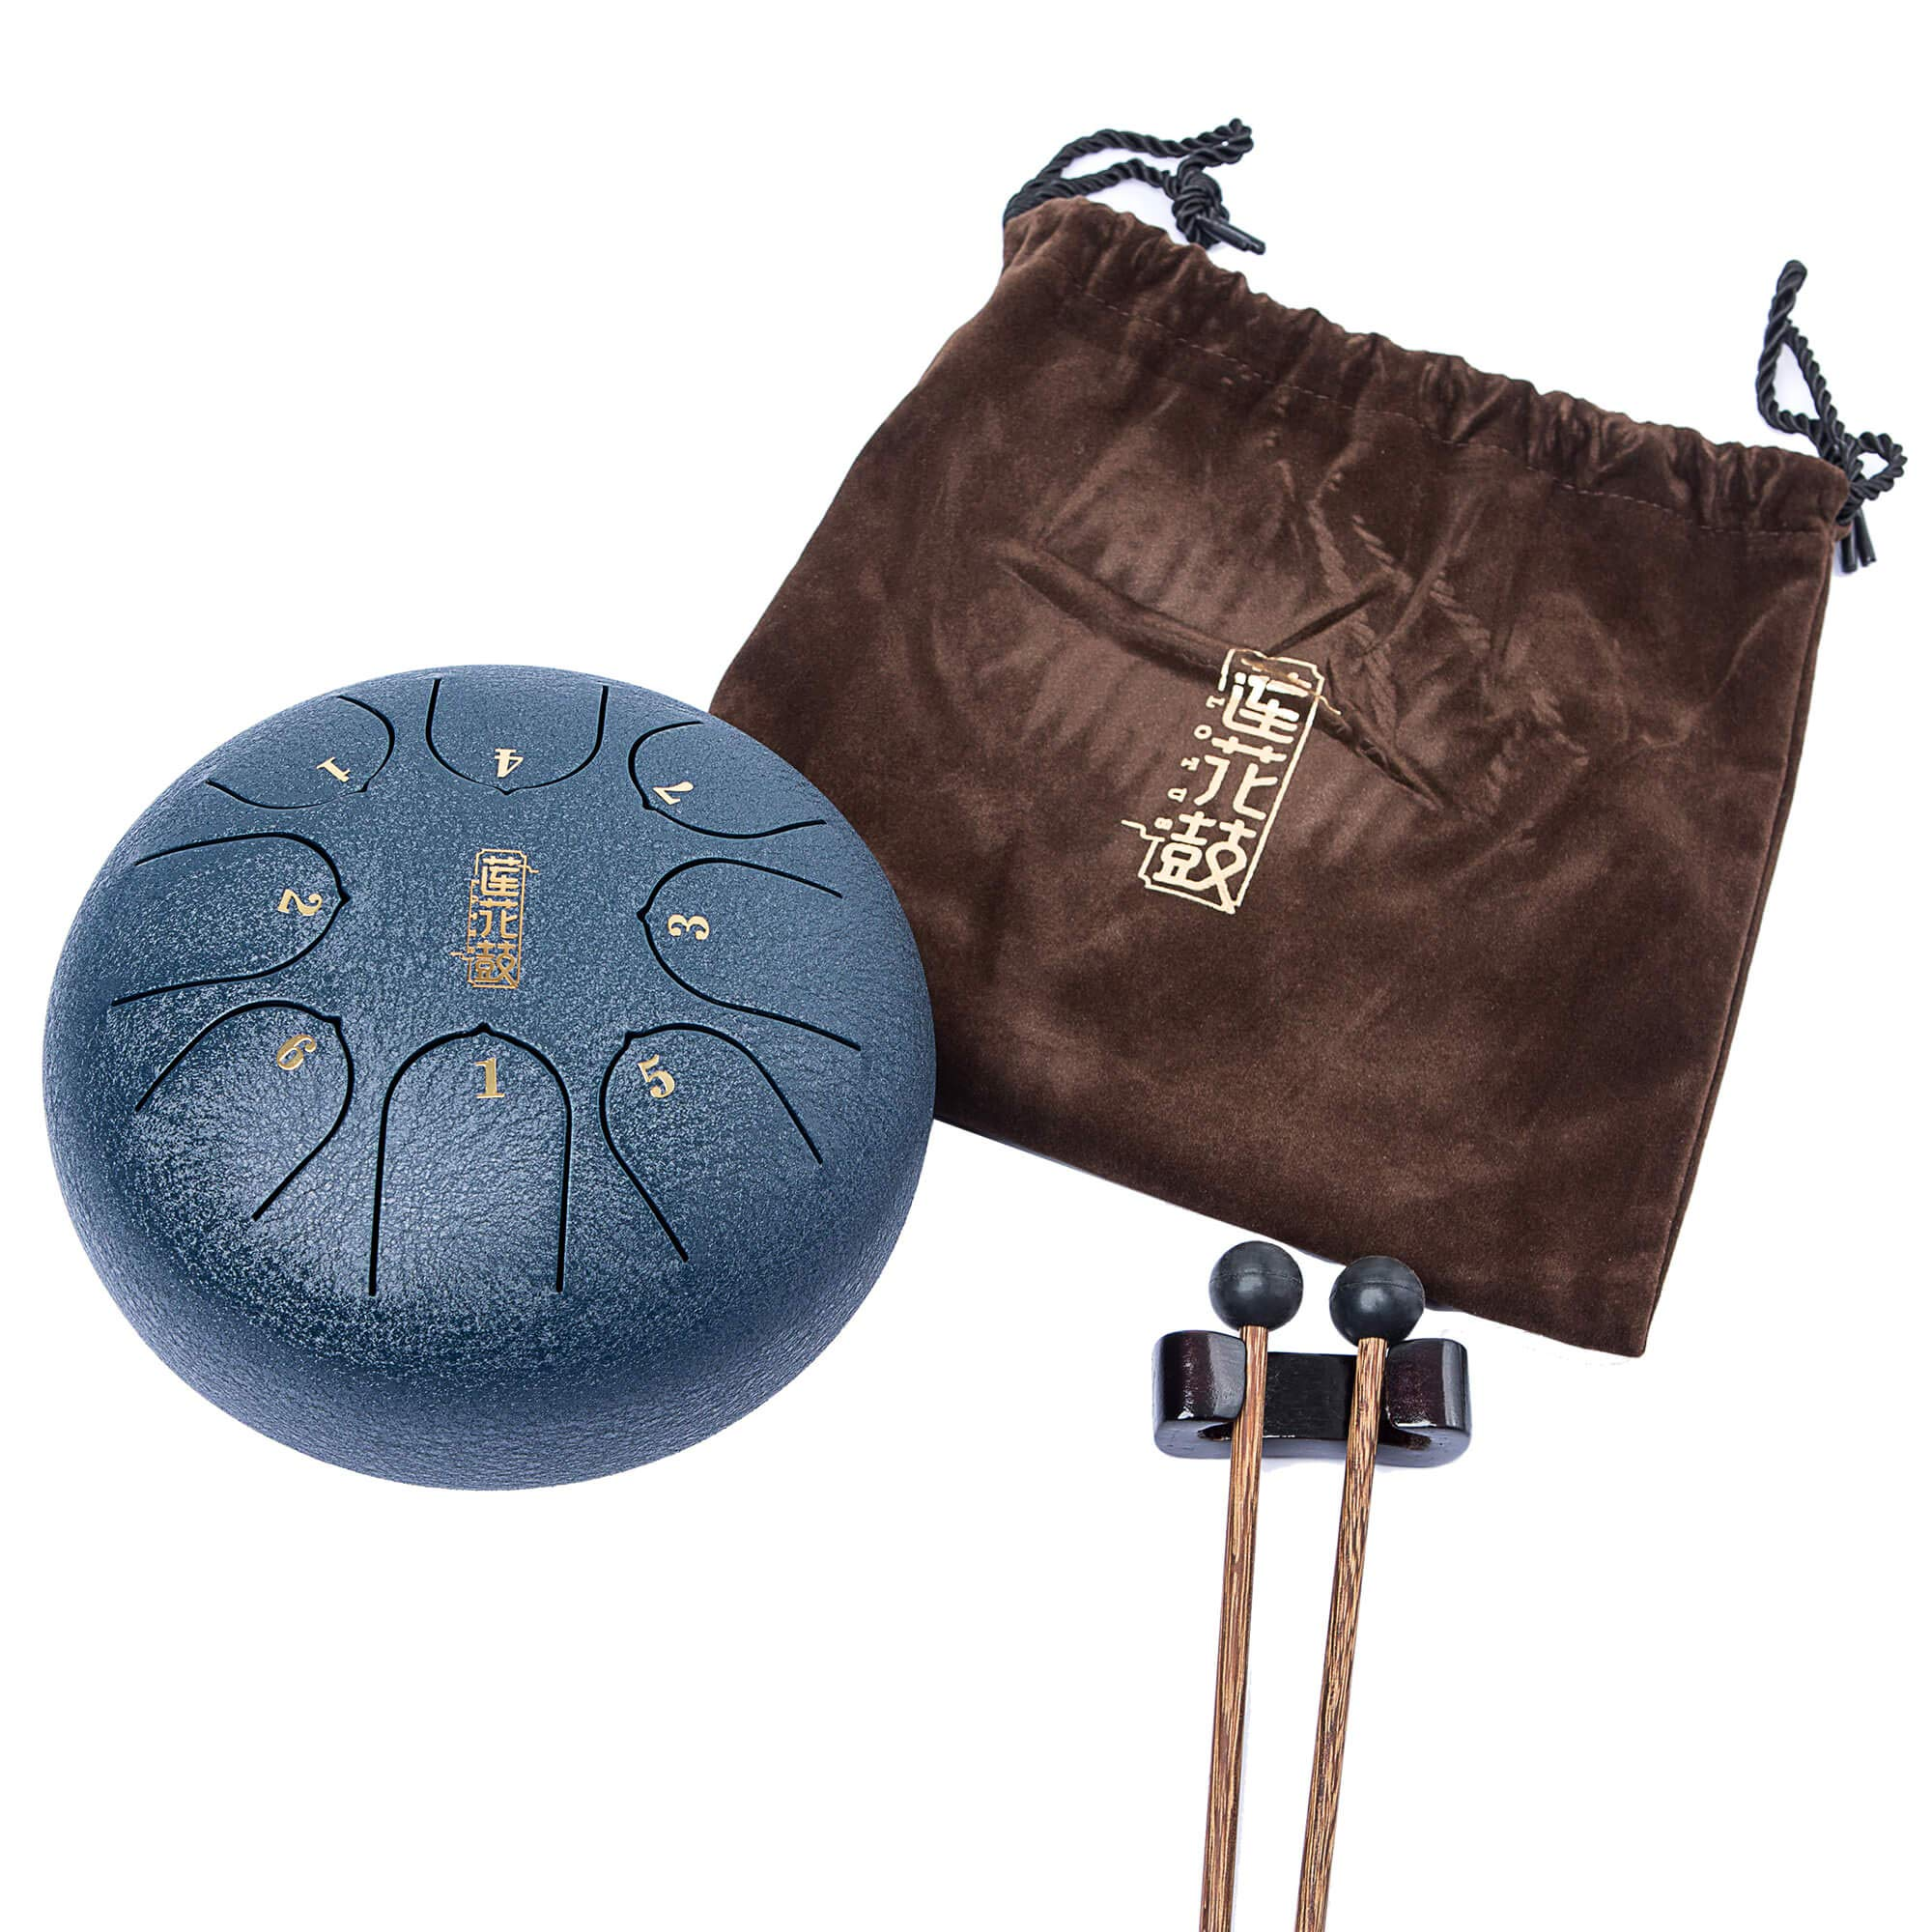 Handpan Tongue Drum 8 Notes 6 Inches Chakra Tank Drum Steel Percussion Hang Drum Instrument with Padded Travel Bag and Mallets Blue (6)